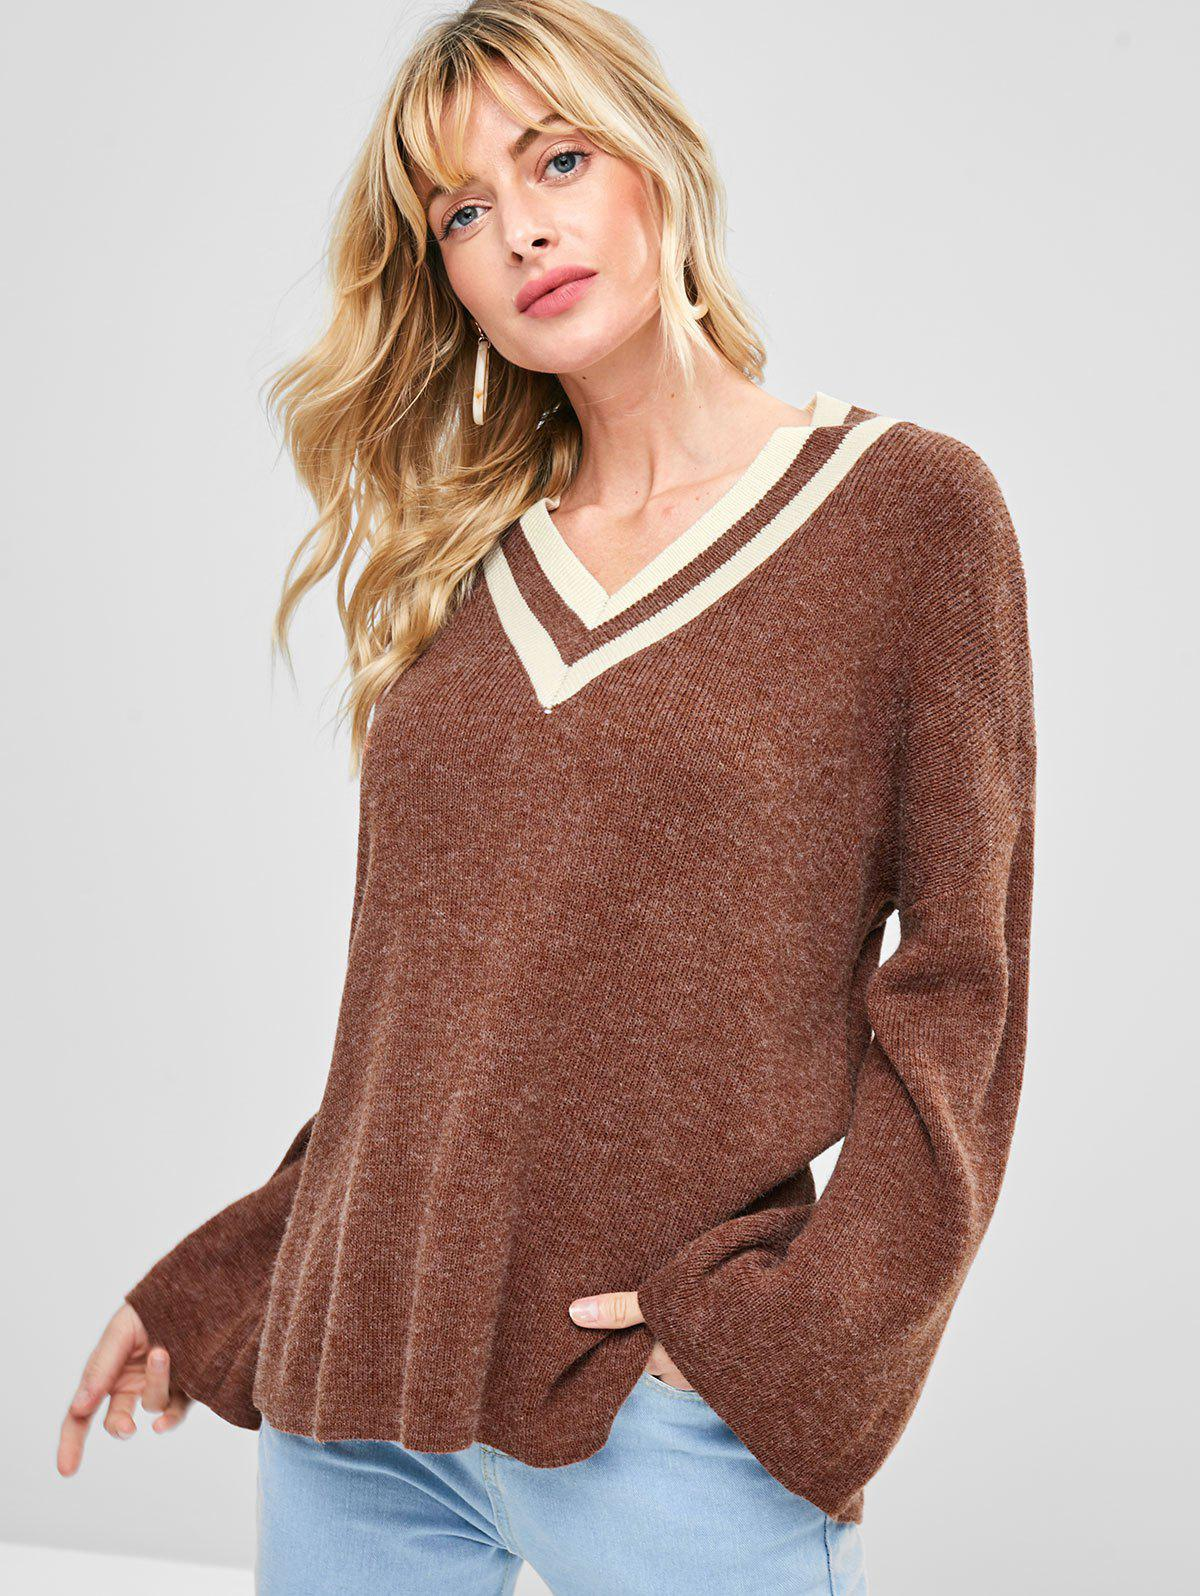 Slit High Low V Neck Sweater